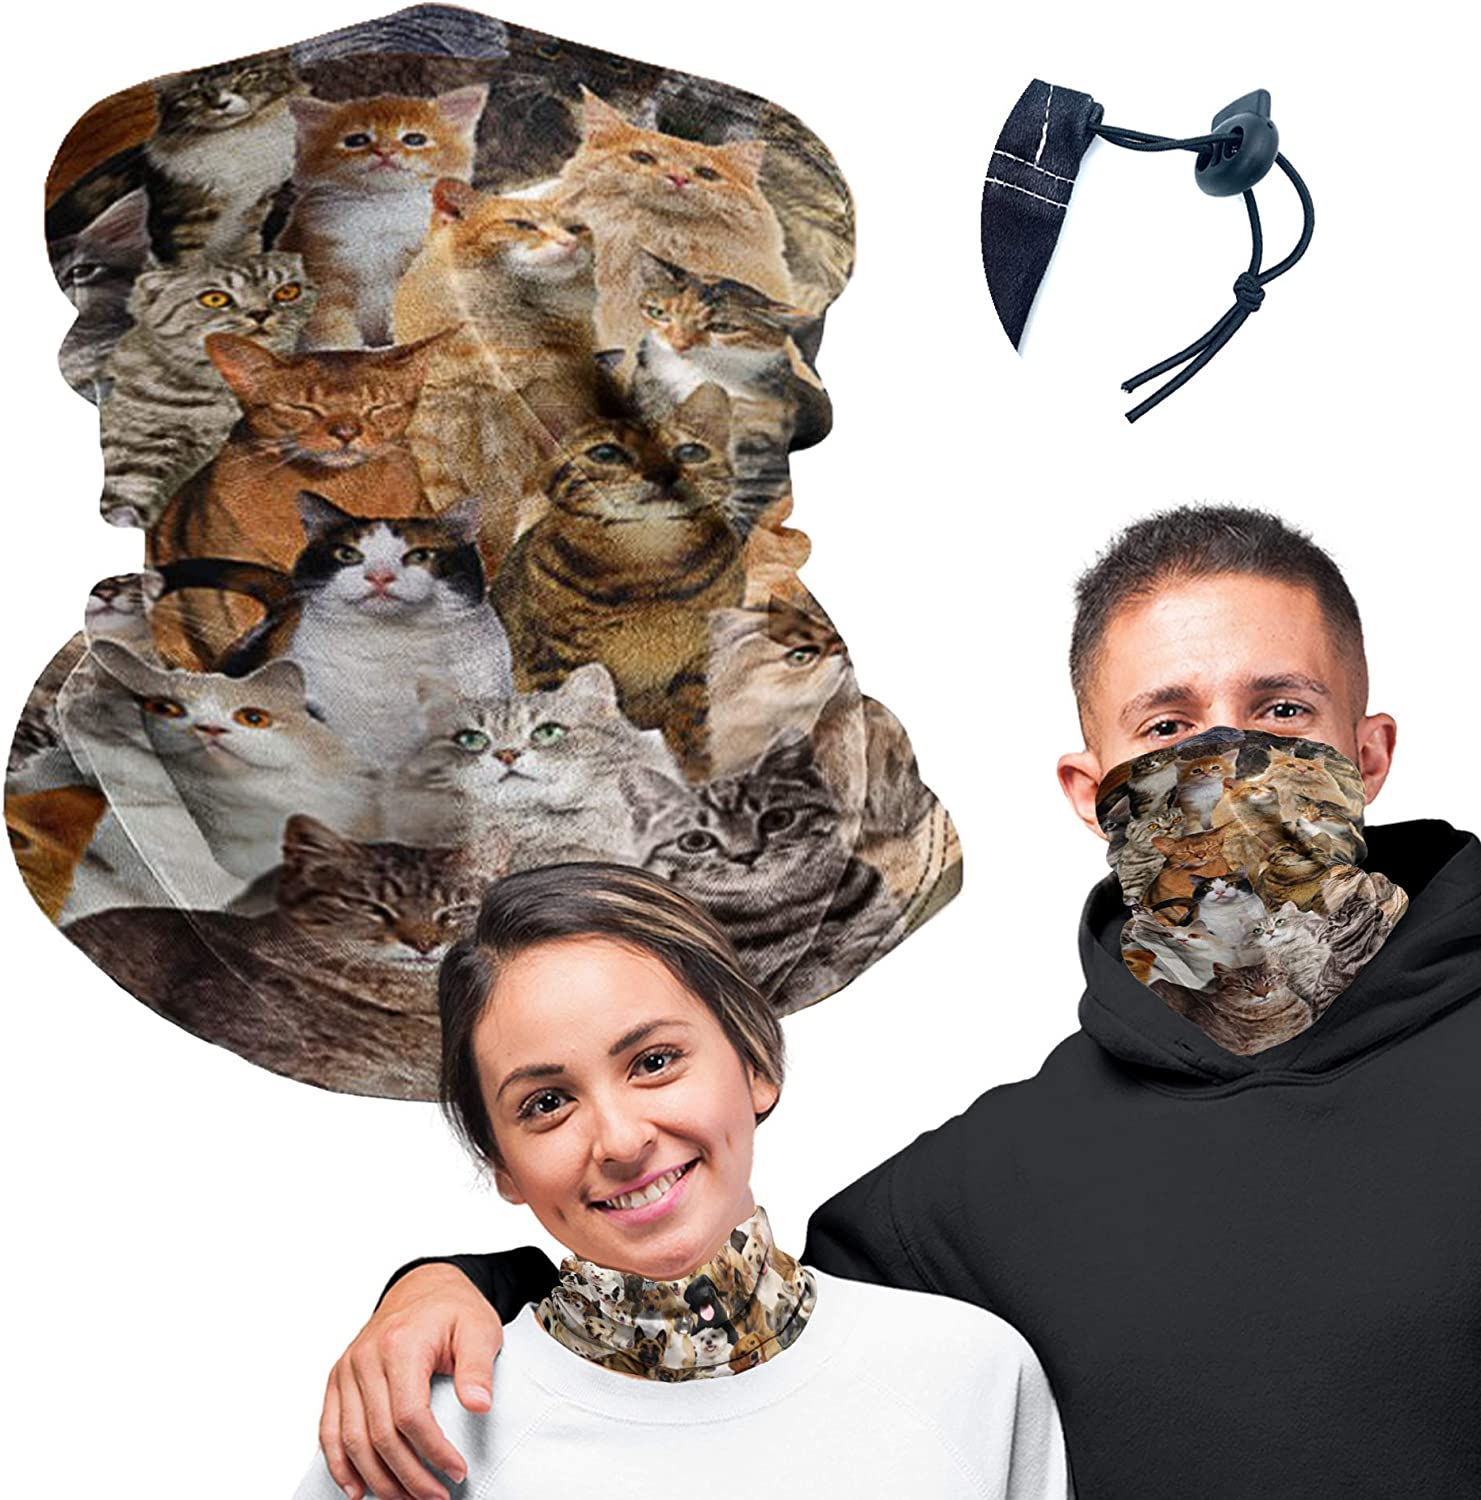 Cute Cats Winter Neck Gaiter Warmer Soft Face Mask Scarf Headwear for Cold Weather Ski Hunting Cycling Outdoor Sports